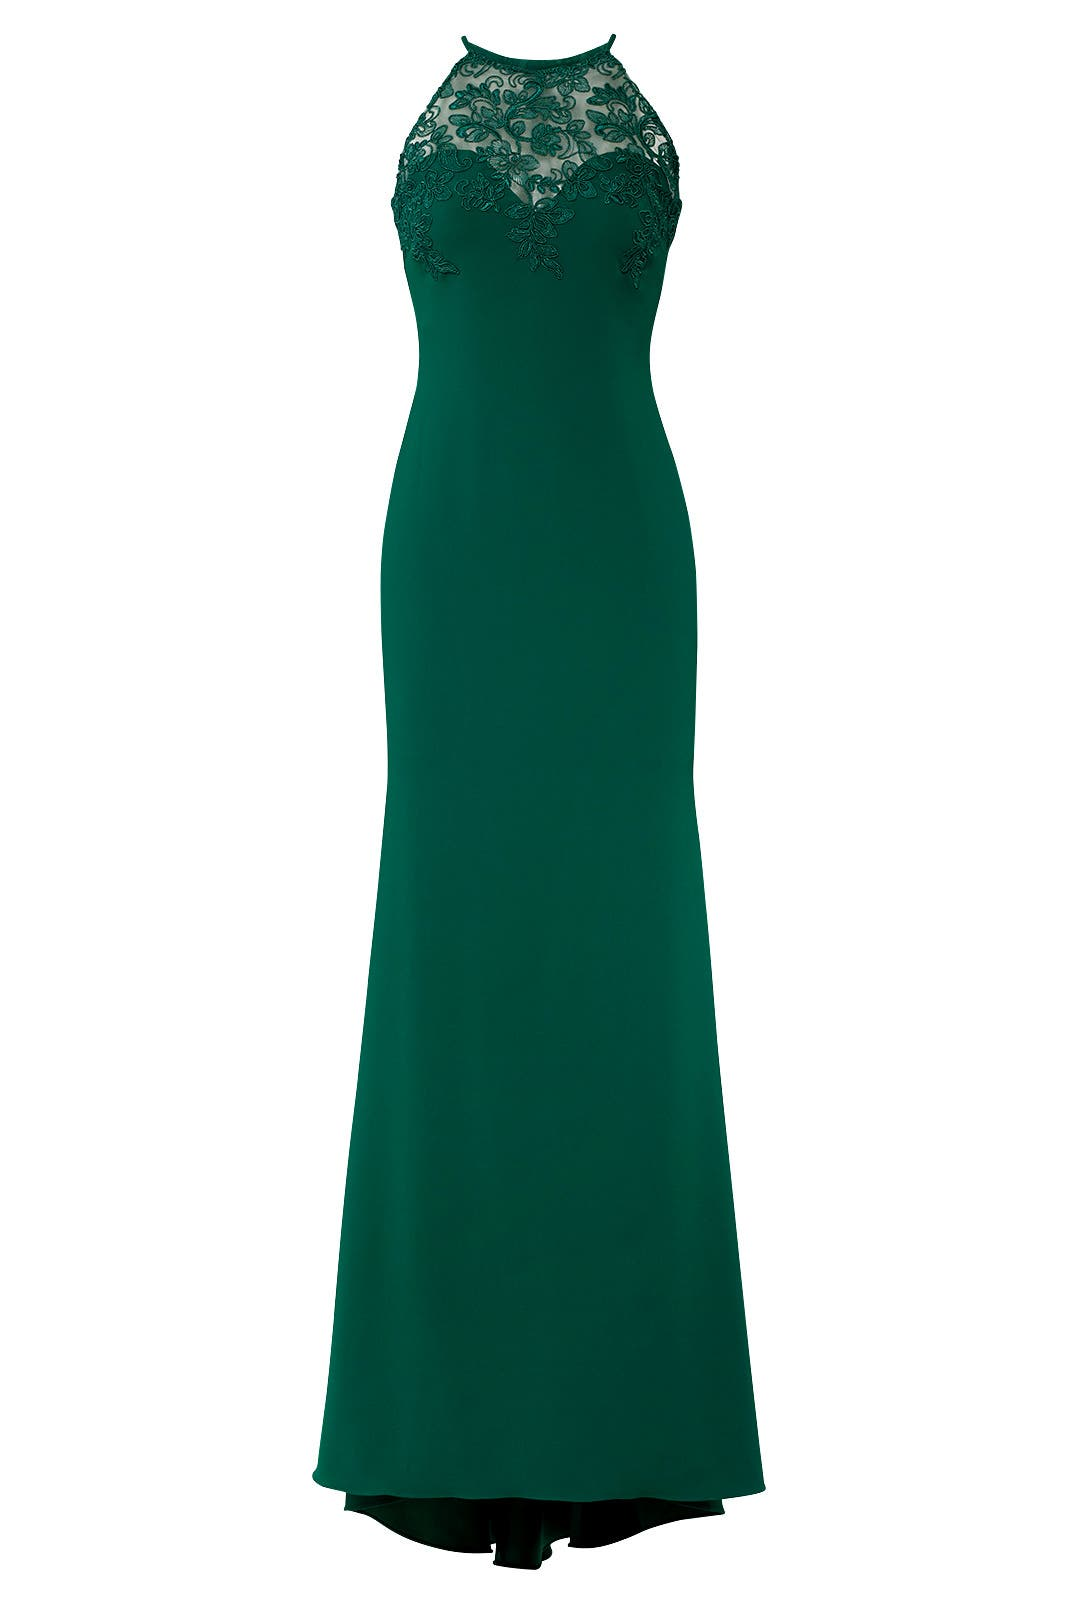 Emerald Lace Tyler Gown by Badgley Mischka for $75 - $95 | Rent the ...